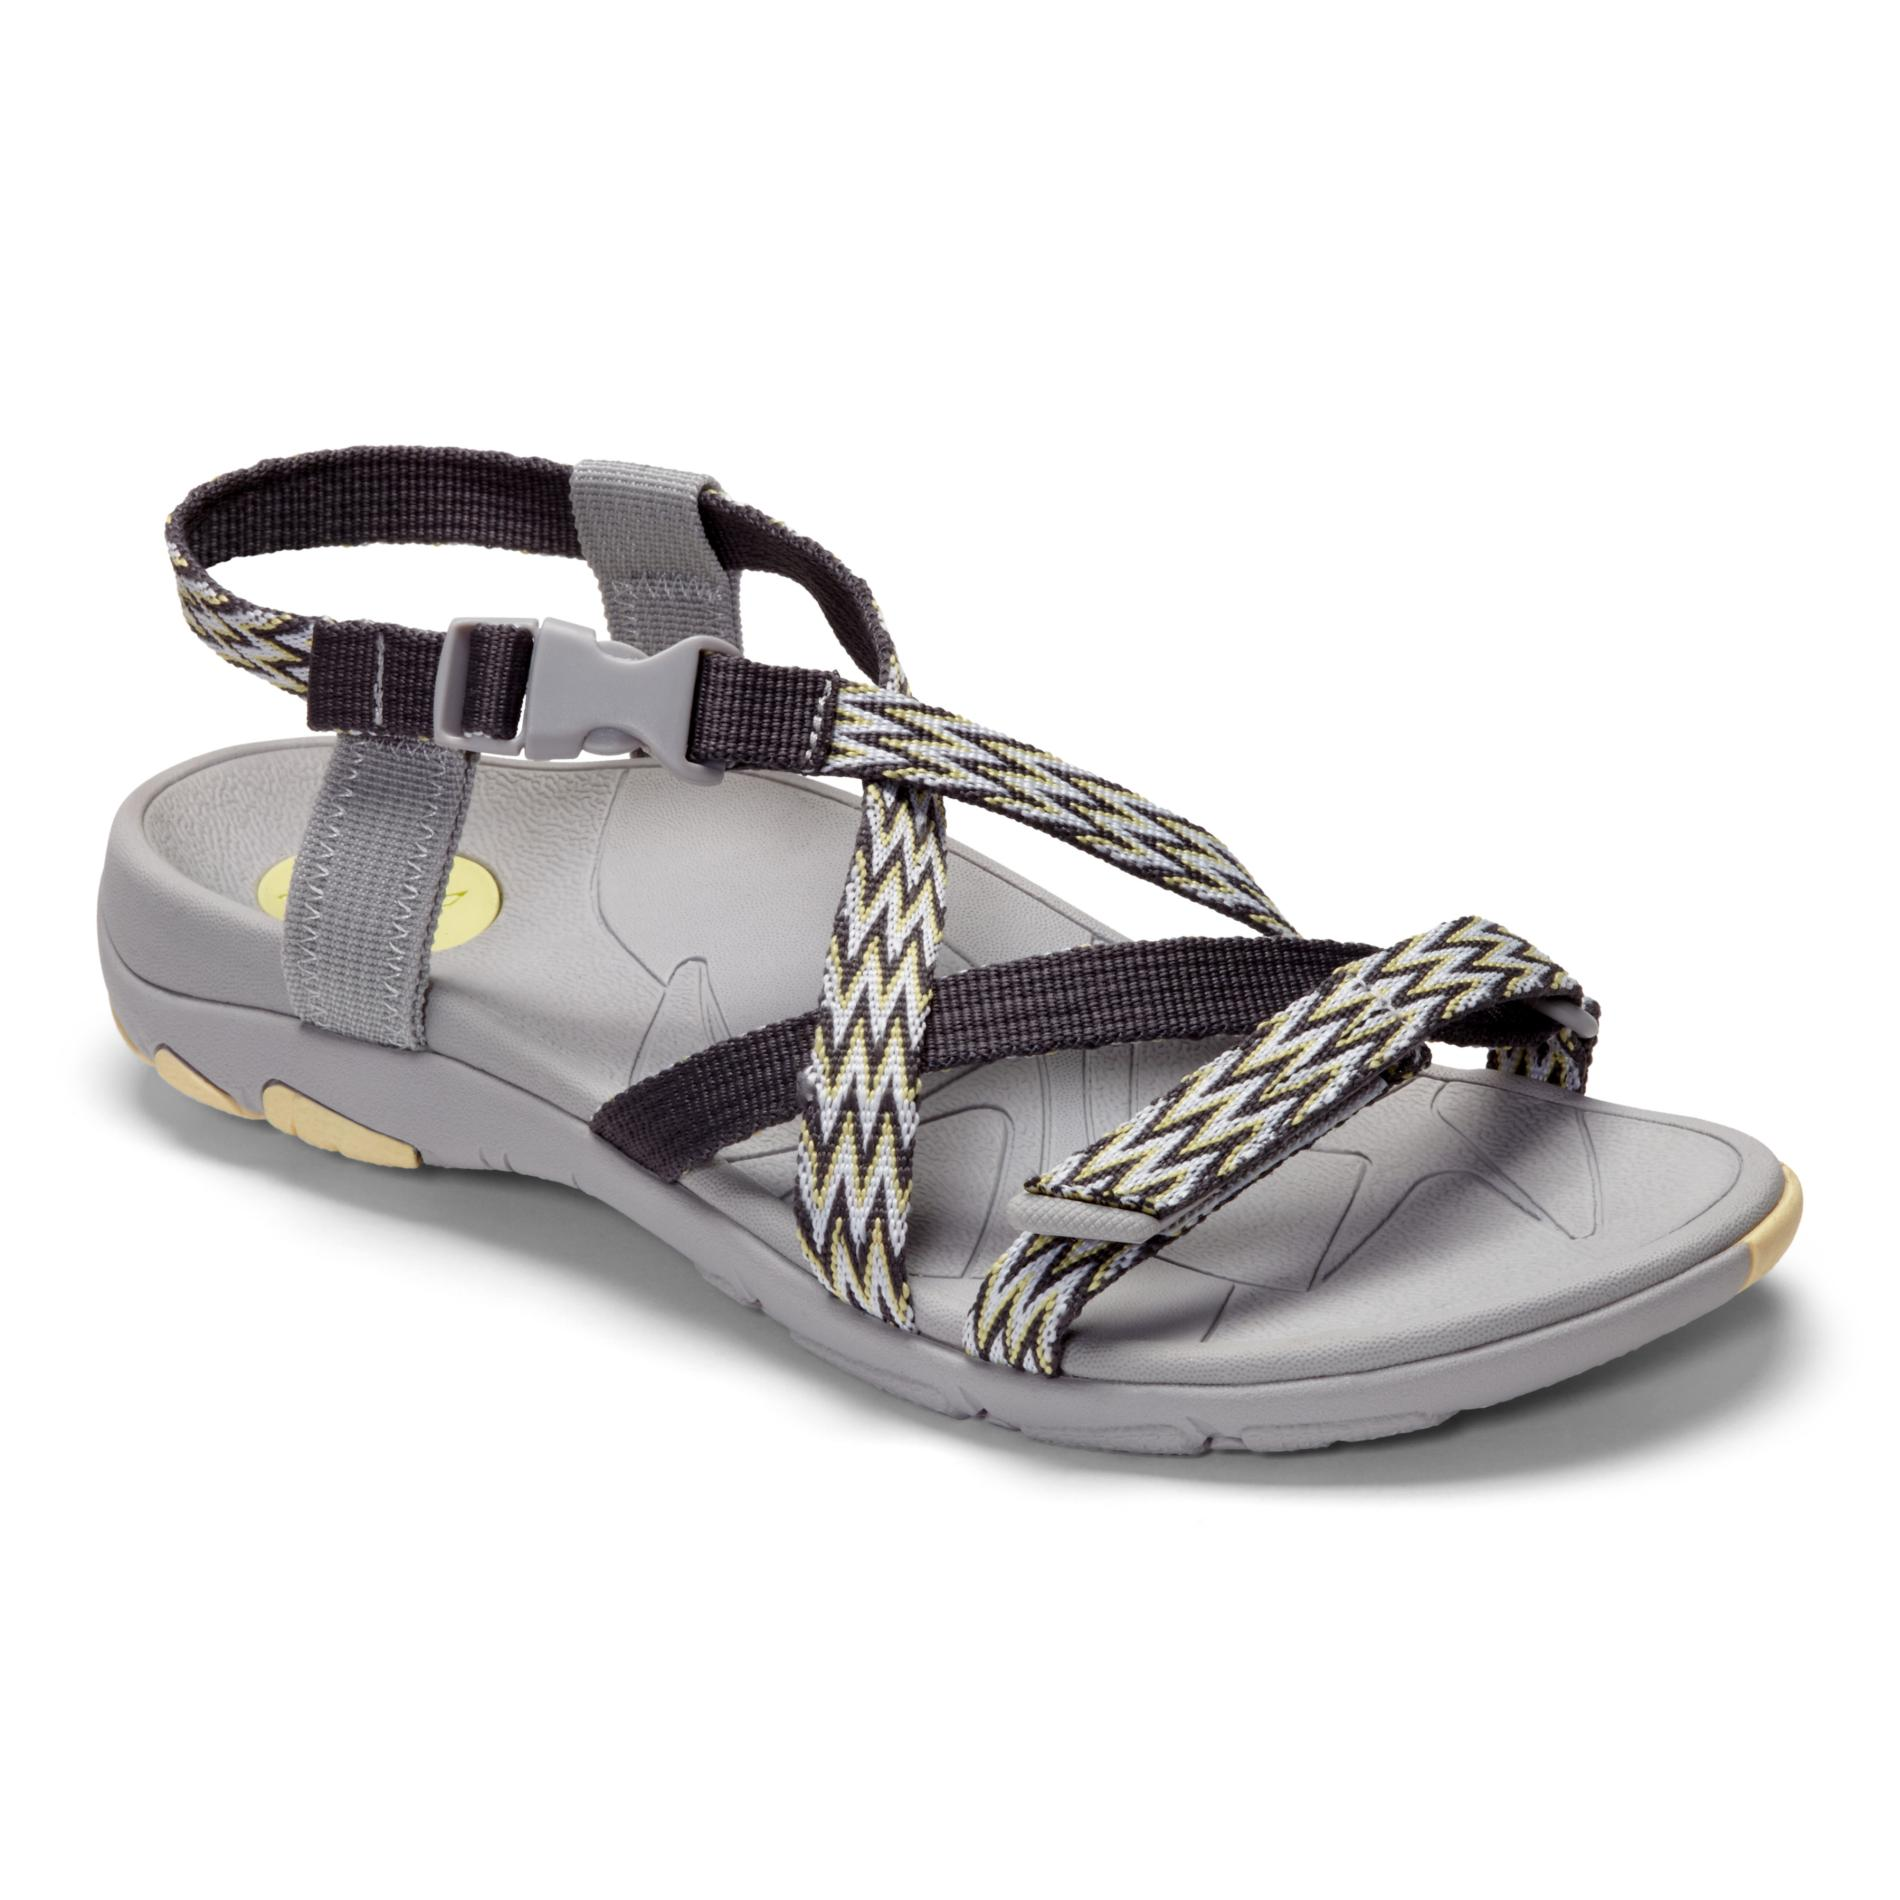 womens sandals womenu0027s sport sandals at sears.com edwymgg